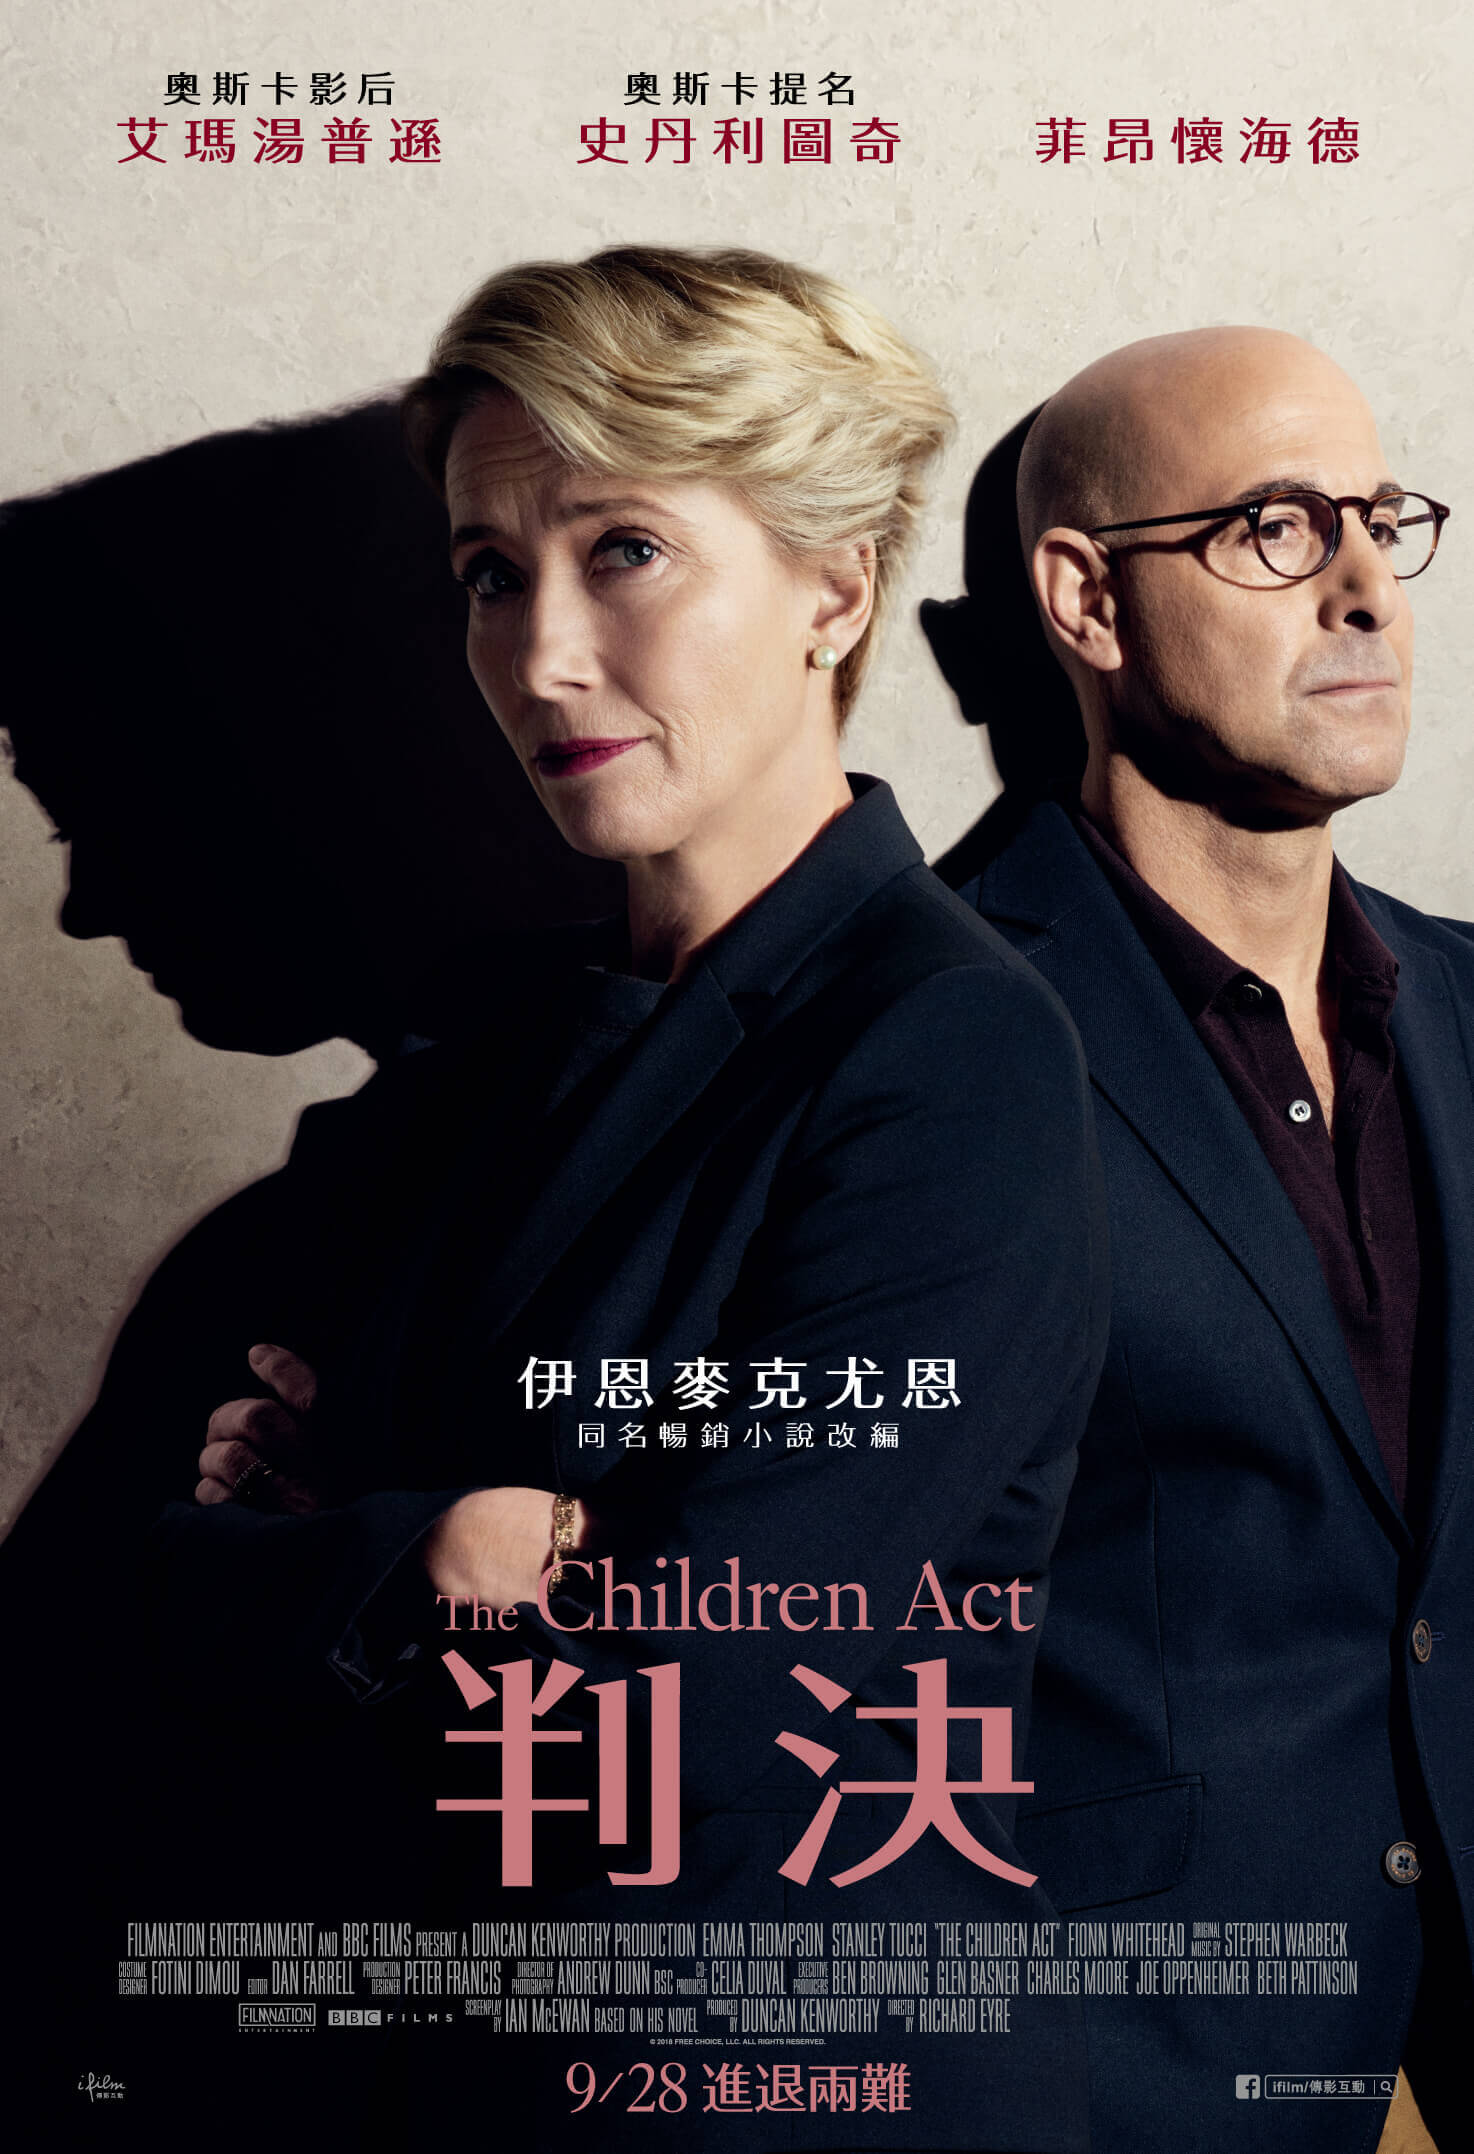 《 判決 》(The Children Act) 中文海報 。